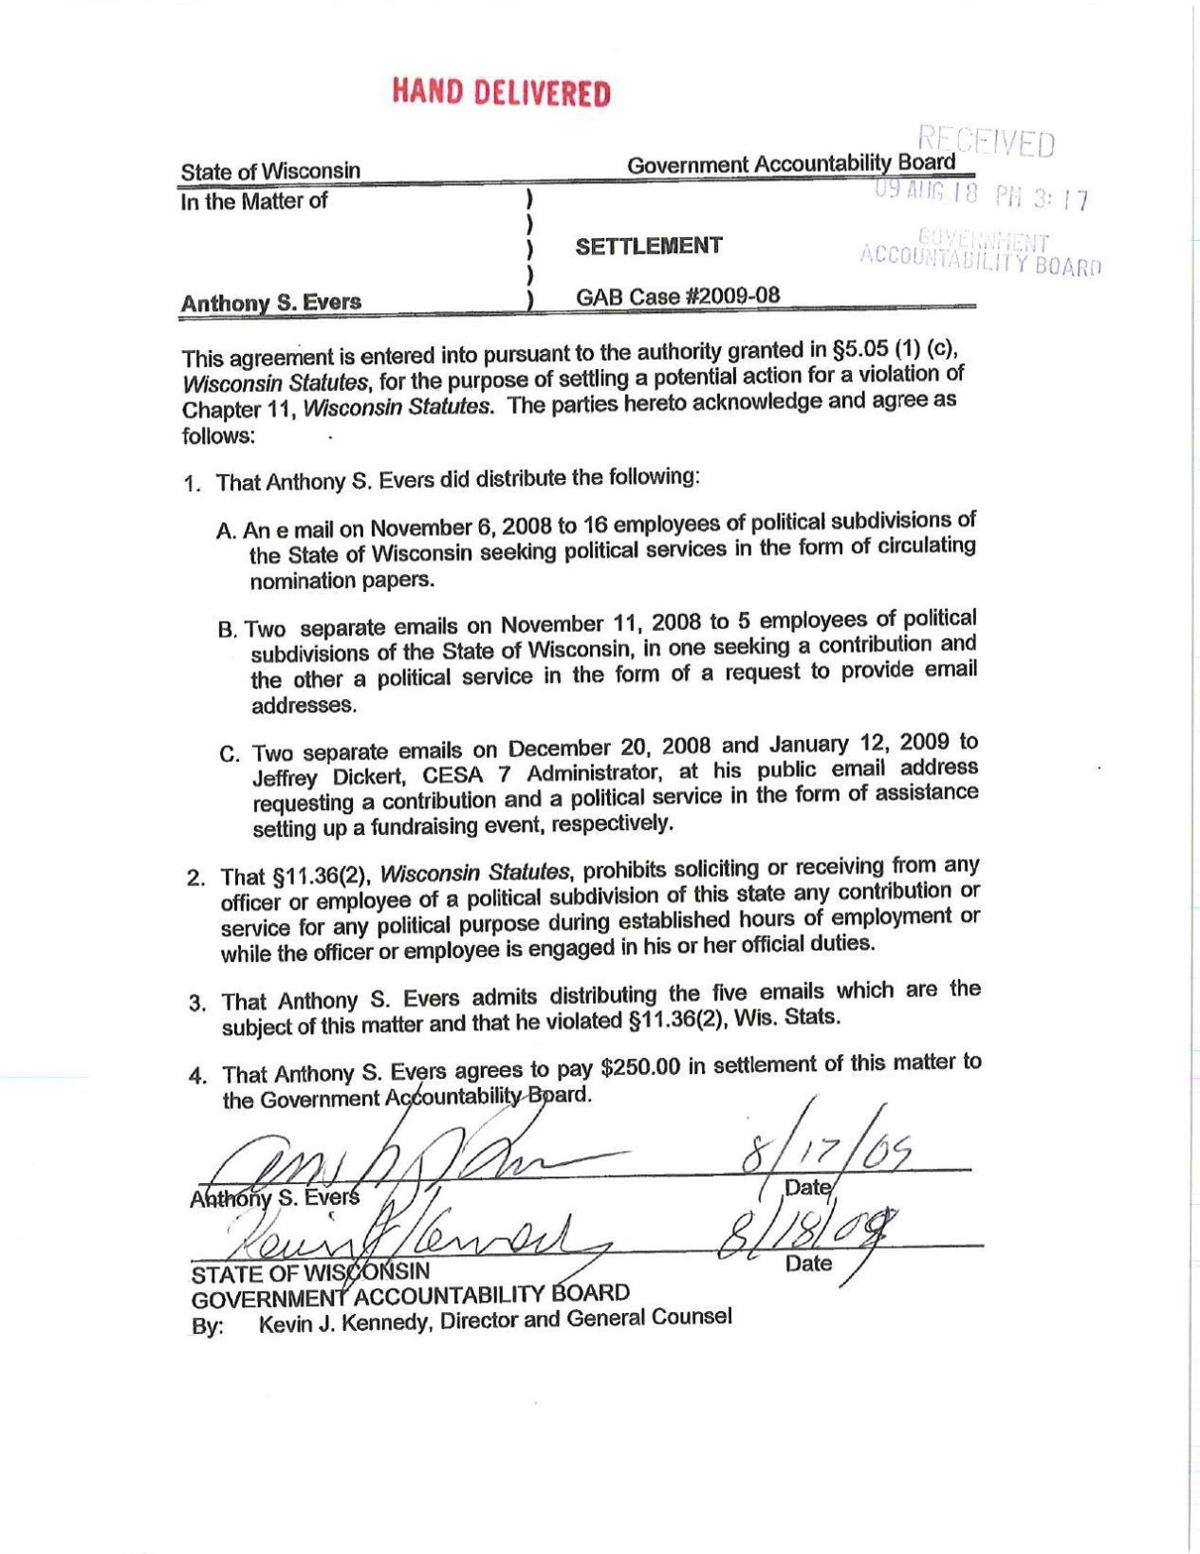 Tony Evers Campaign Violation Agreement State And Regional